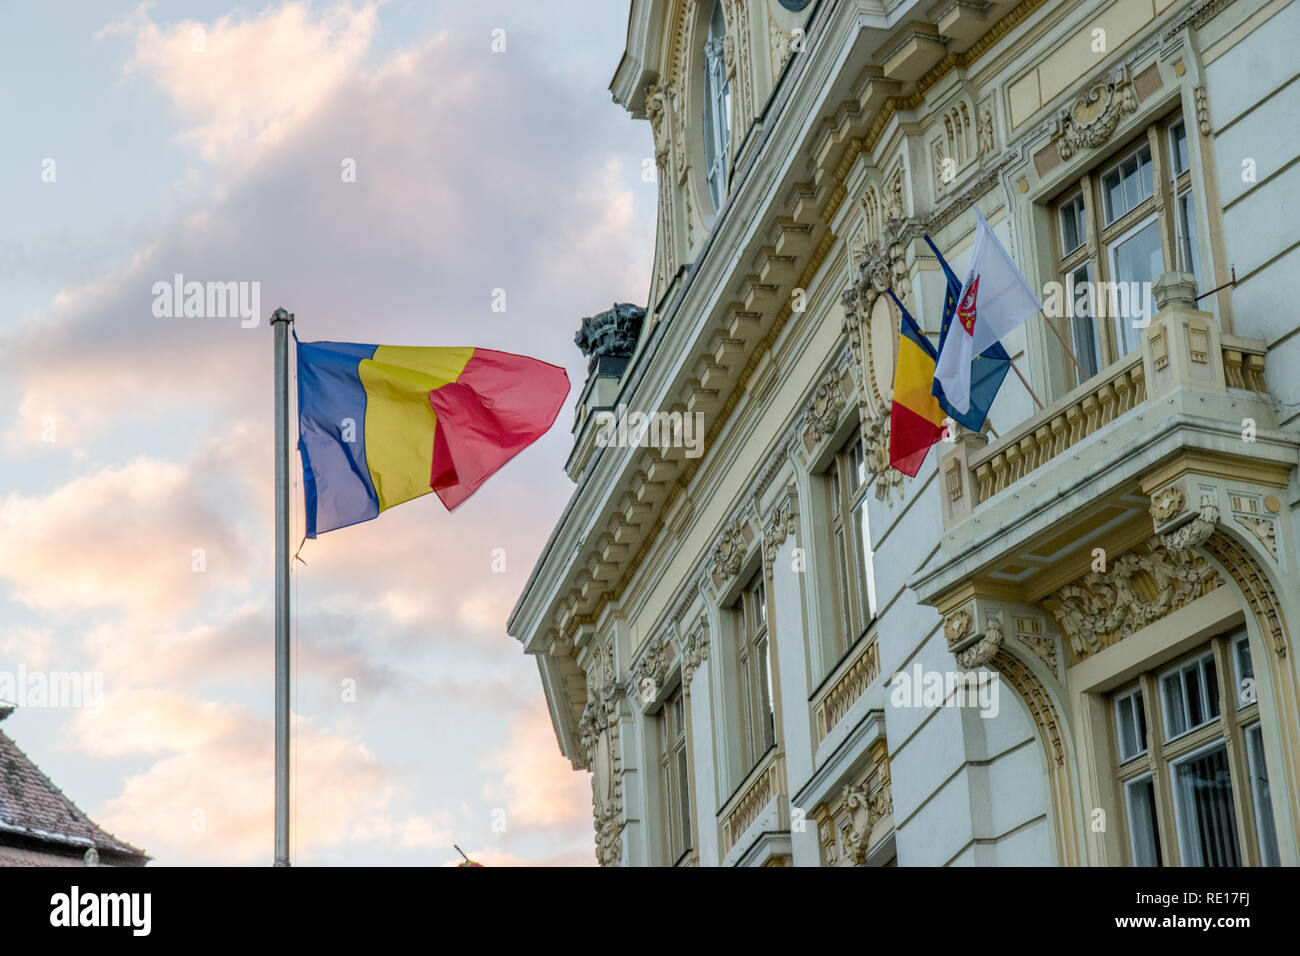 The City Hall Of Sibiu And The Flags Of The Country The European Union And The City Itself In Sibiu Romania Stock Photo Alamy